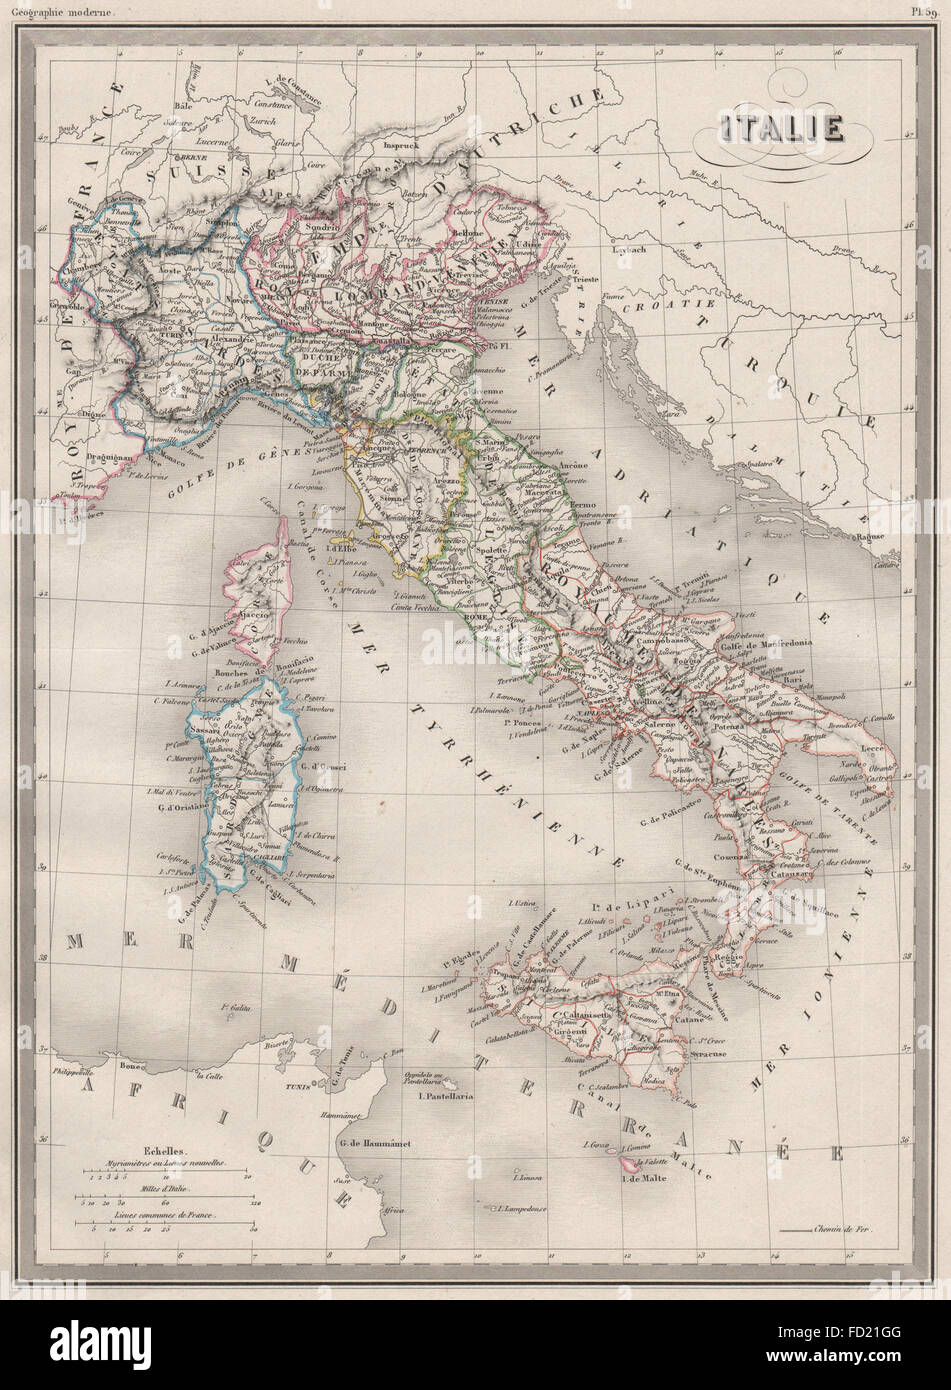 Showing states Original outline colour Italie ITALY MALTE-BRUN c1846 map